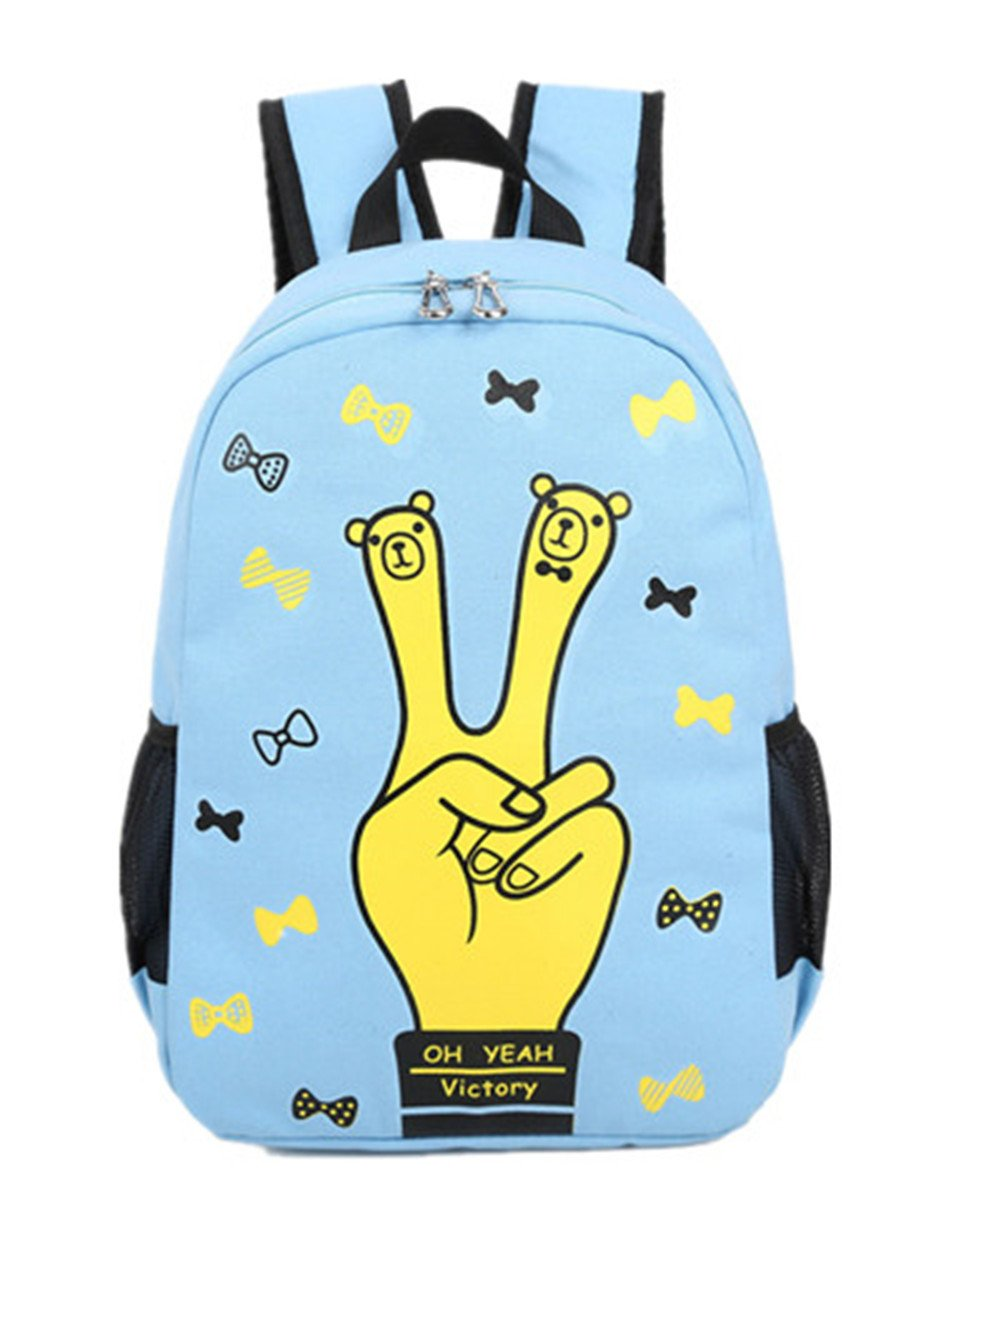 8ecc6e8a8a TANG imp Cute Fingers Teenage Girls Students Canvas Backpack Casual  Travelling Outdoor Rucksack Lightweight Shoulder Bookbags Schoolbag Blue   Amazon.co.uk  ...